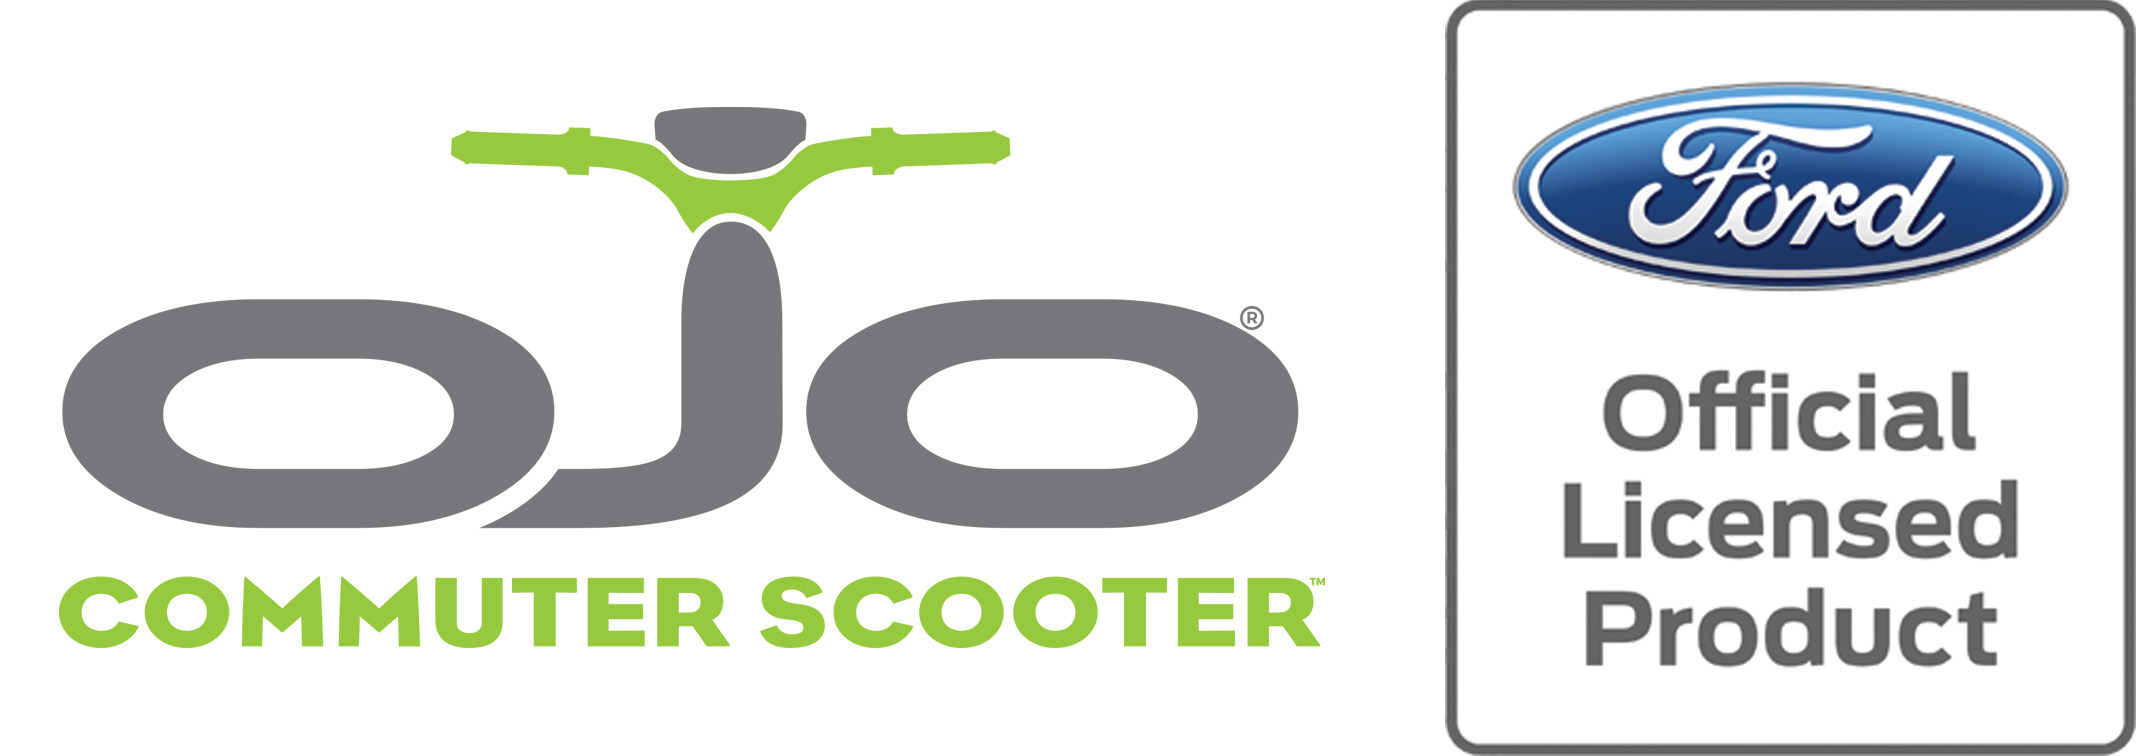 OjO Electric, a Ford official licensee product.